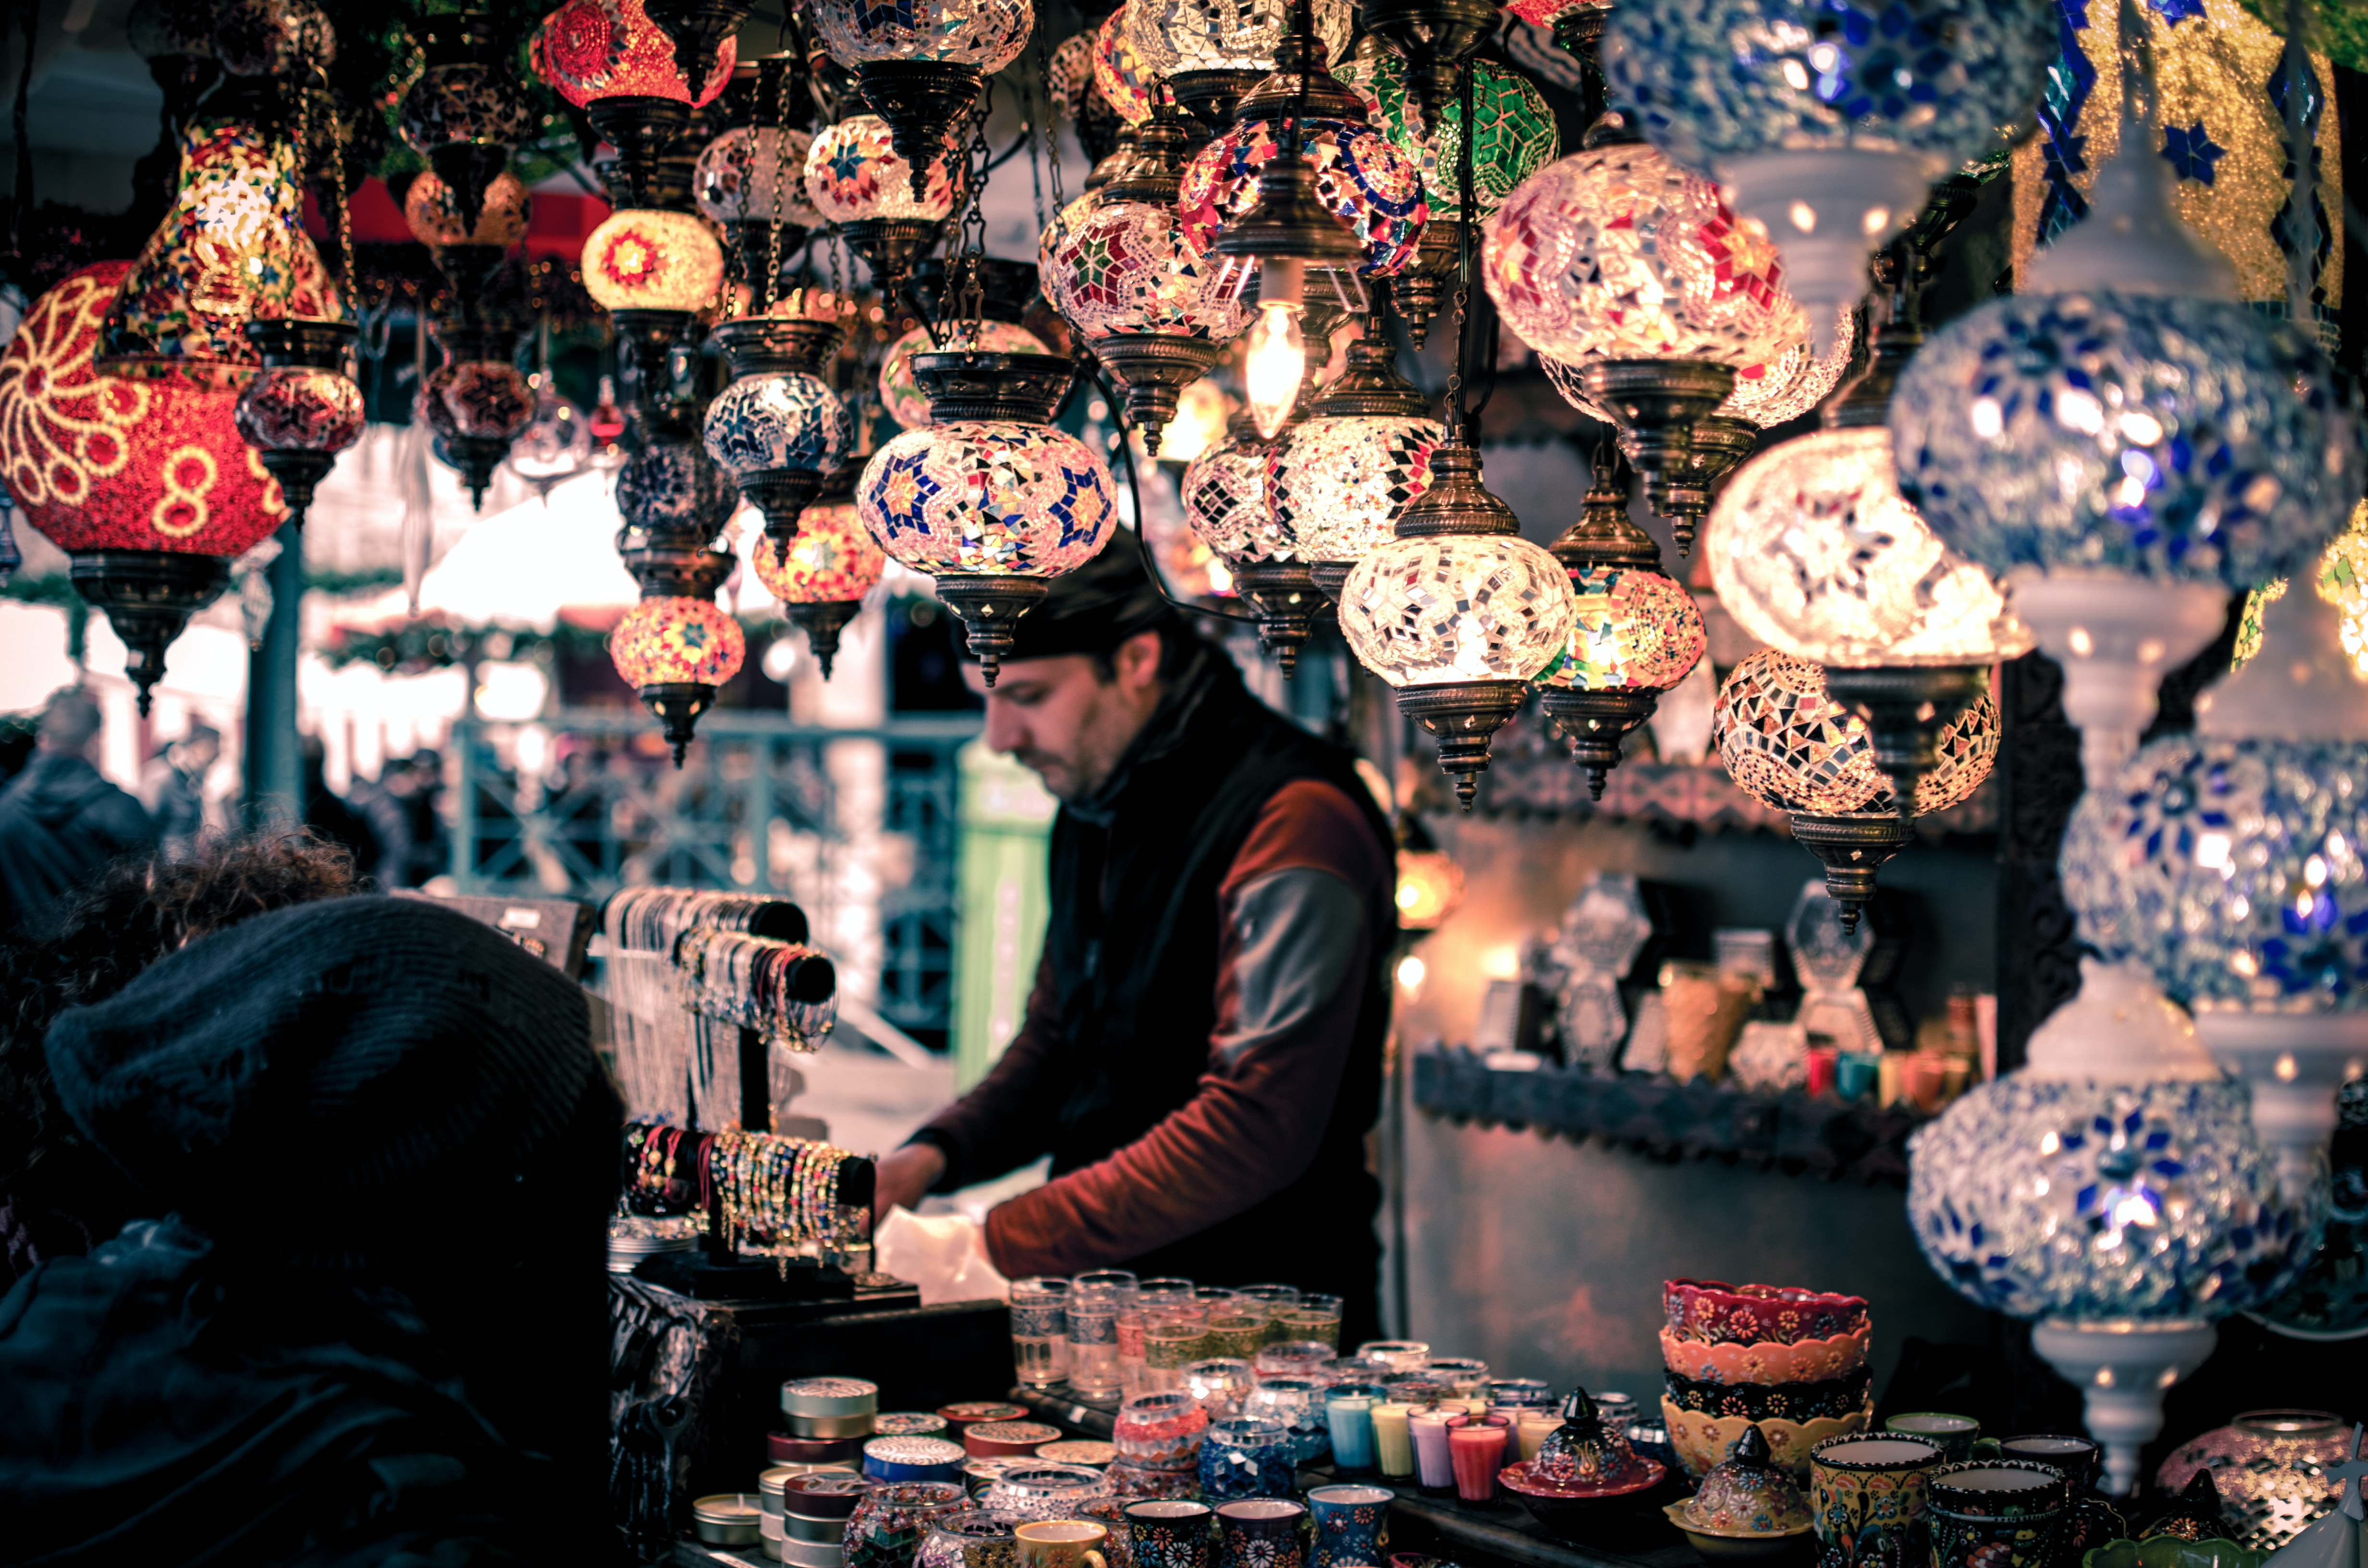 Colorful lanterns hanging above a street market stall with various decorative items